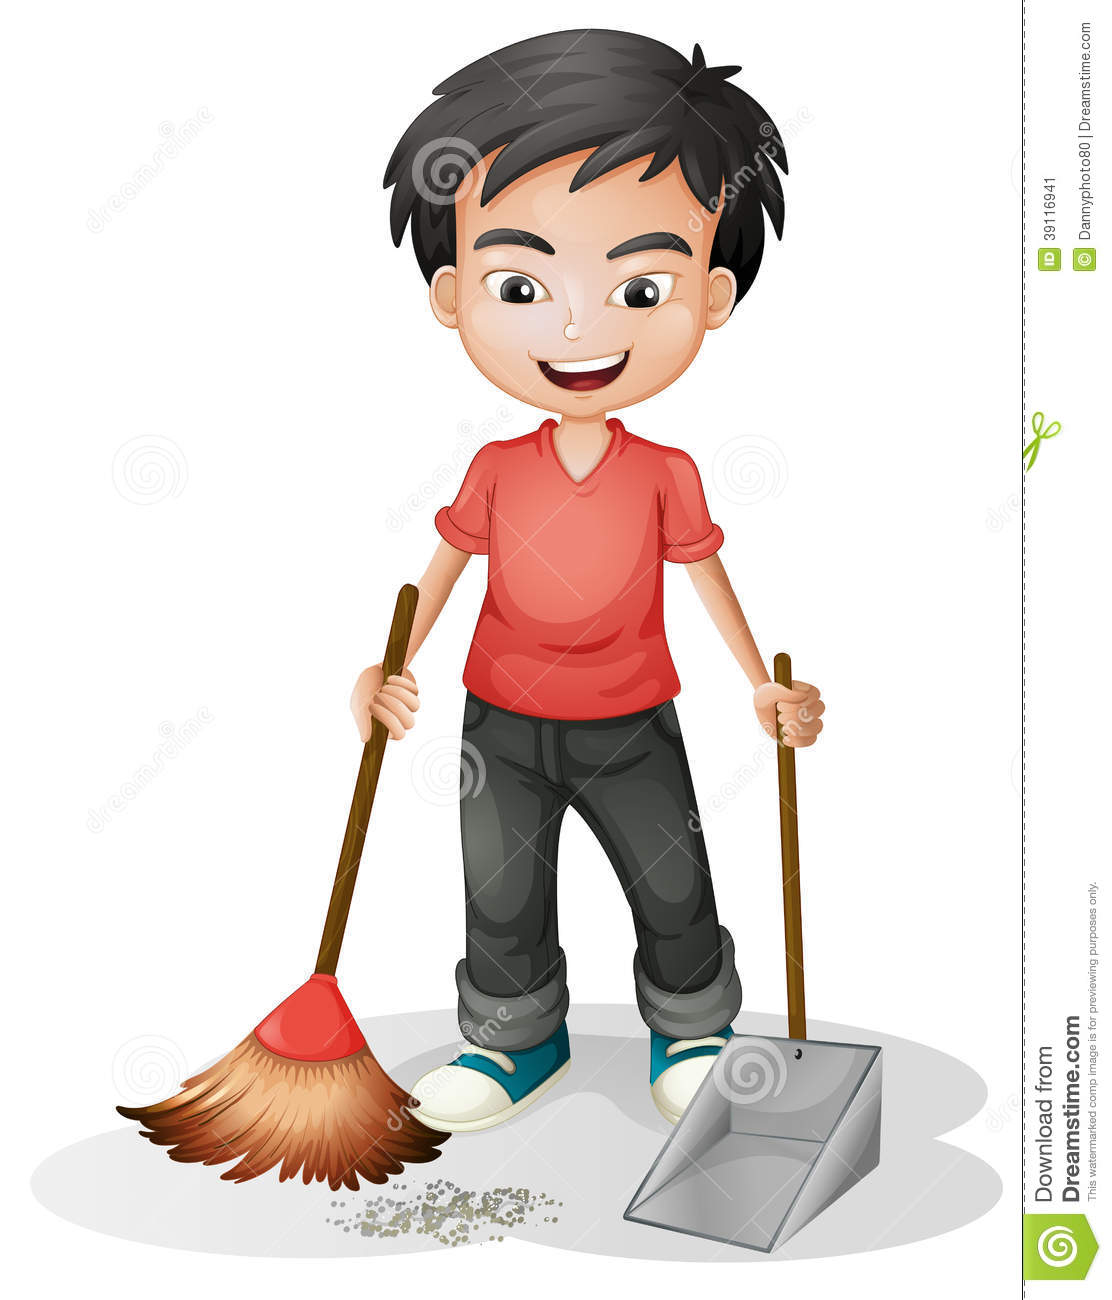 Clipart sweeping.